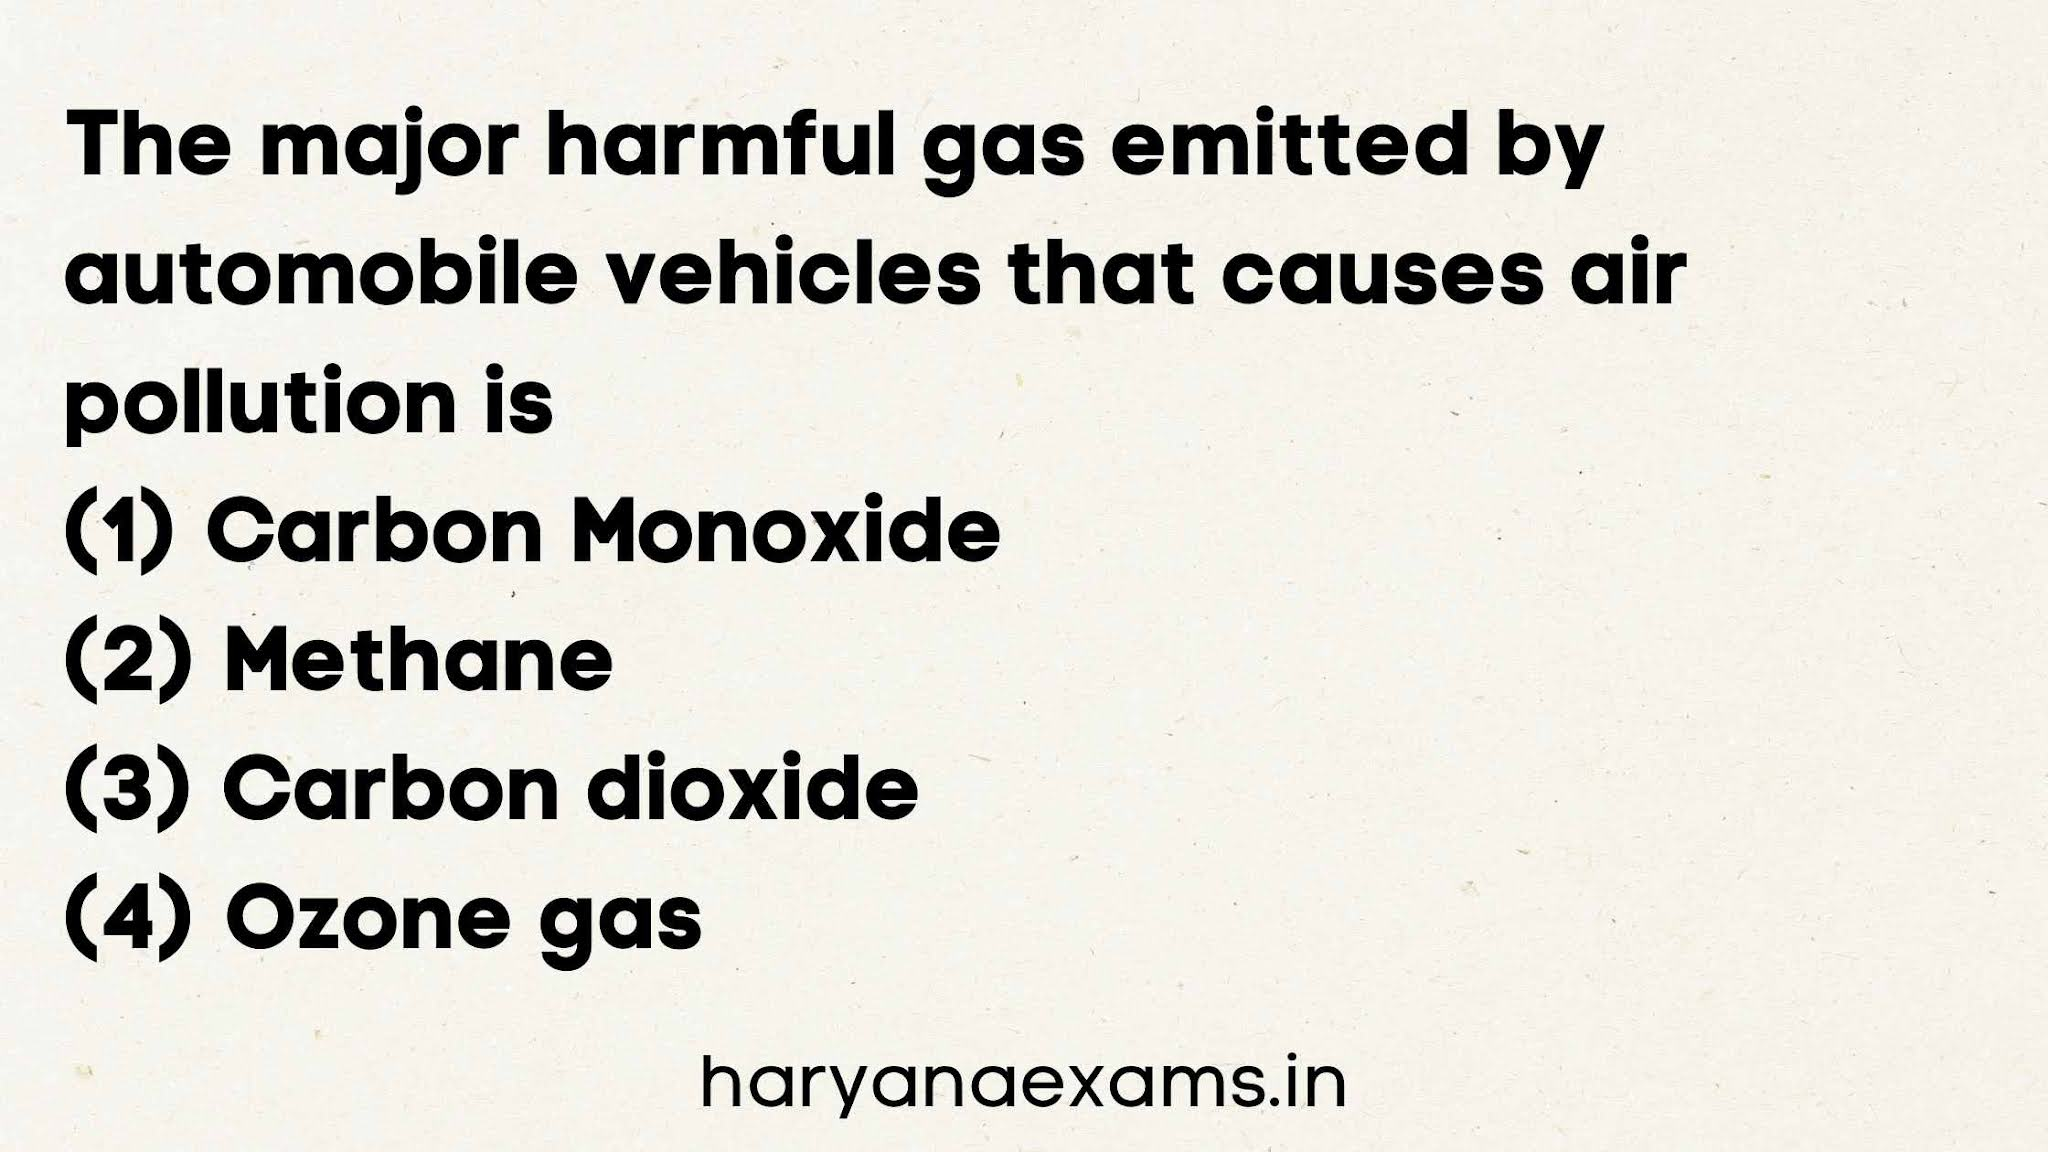 The major harmful gas emitted by automobile vehicles that causes air pollution is   (1) Carbon Monoxide   (2) Methane   (3) Carbon dioxide   (4) Ozone gas